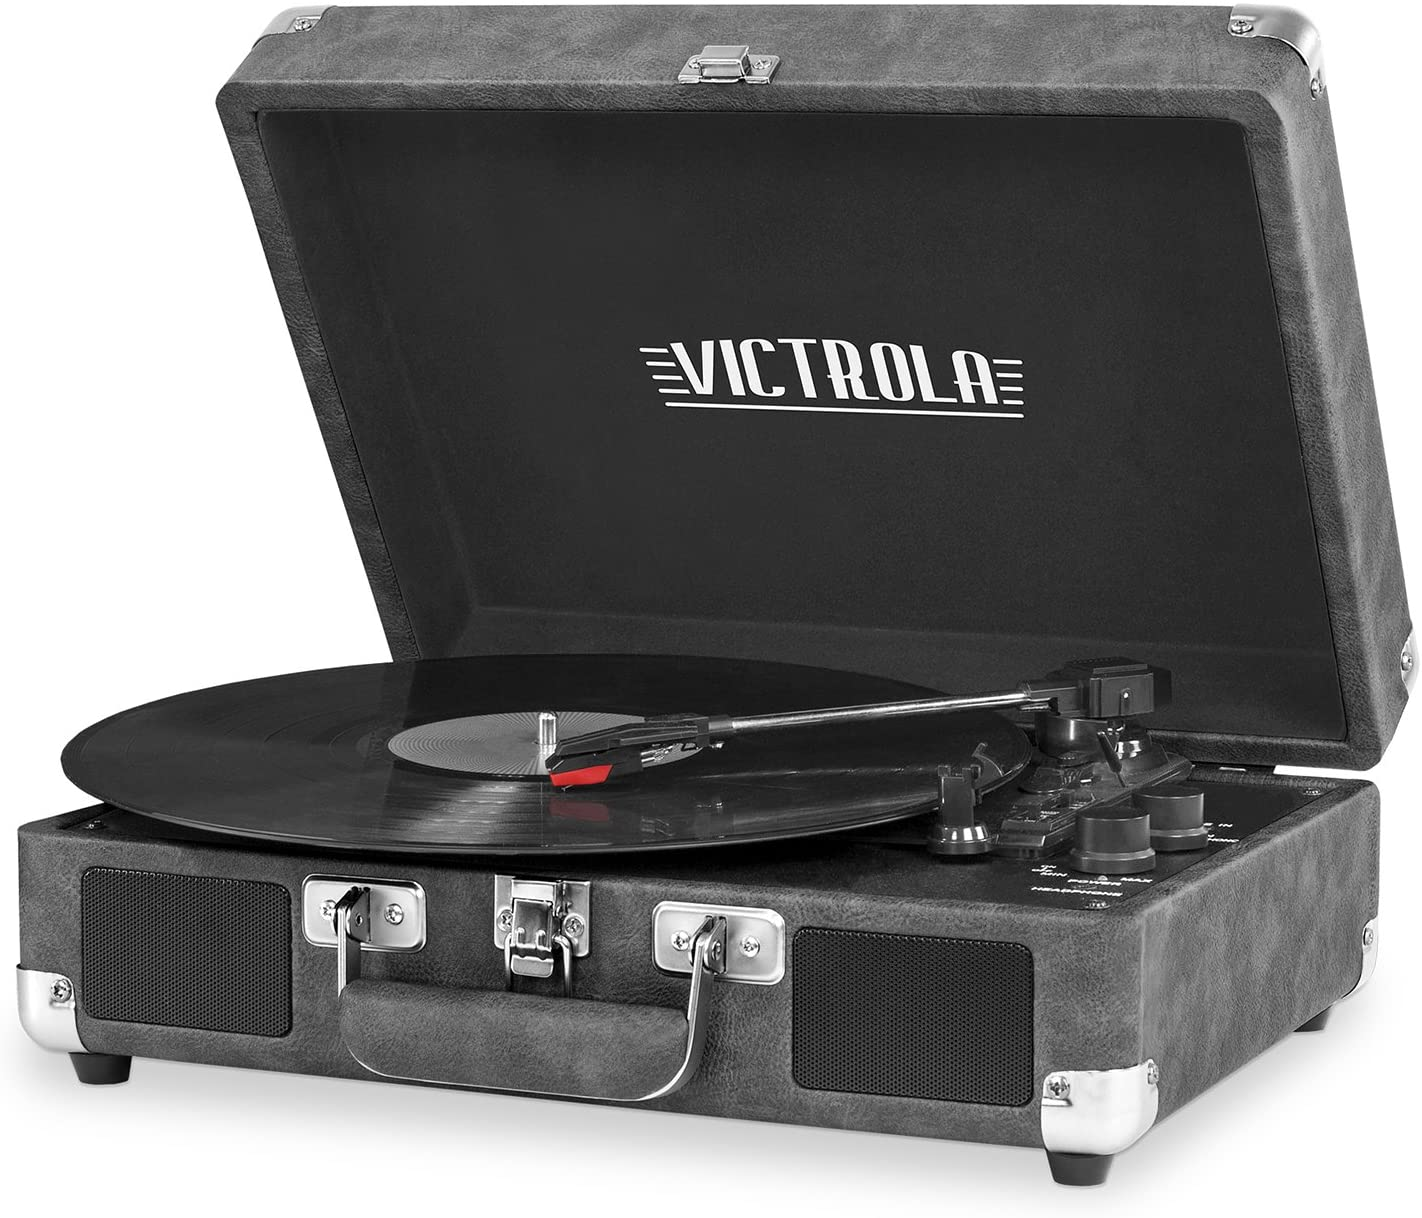 Victrola Vintage 3-Speed Bluetooth Portable Suitcase Record Player with Built-in Speakers | Upgraded Turntable Audio Sound| Includes Extra Stylus | Gray